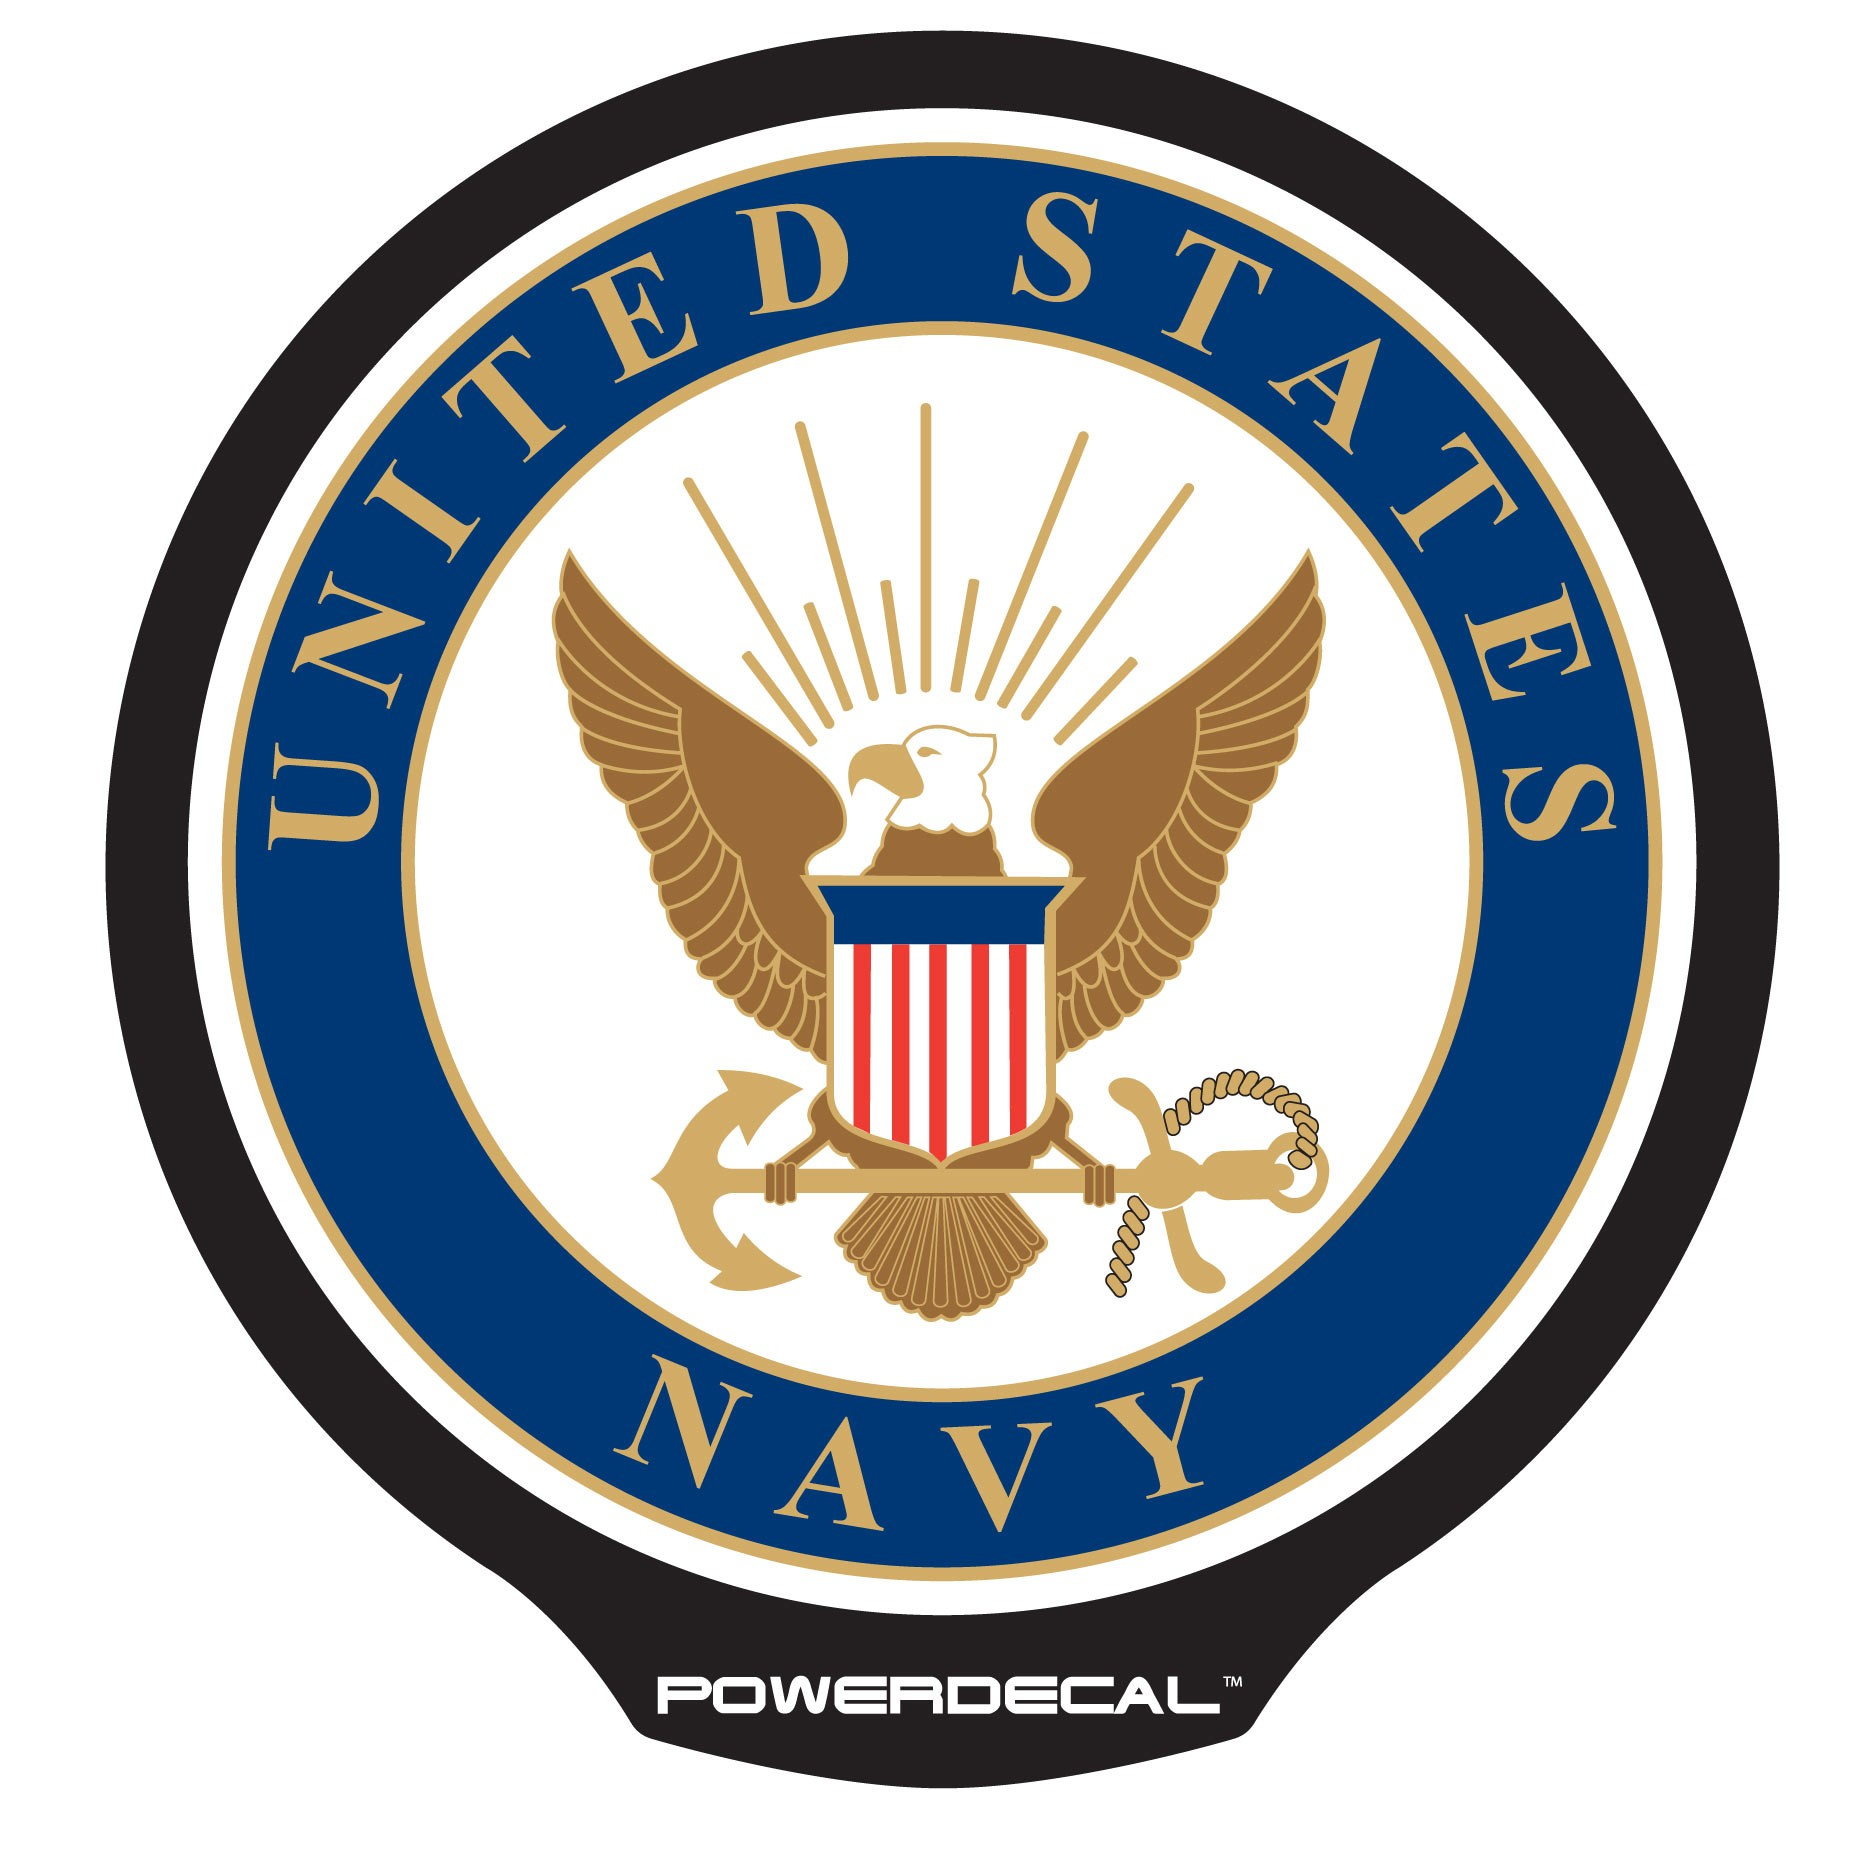 United states navy clip art jpg library download United states navy clip art - ClipartFest jpg library download